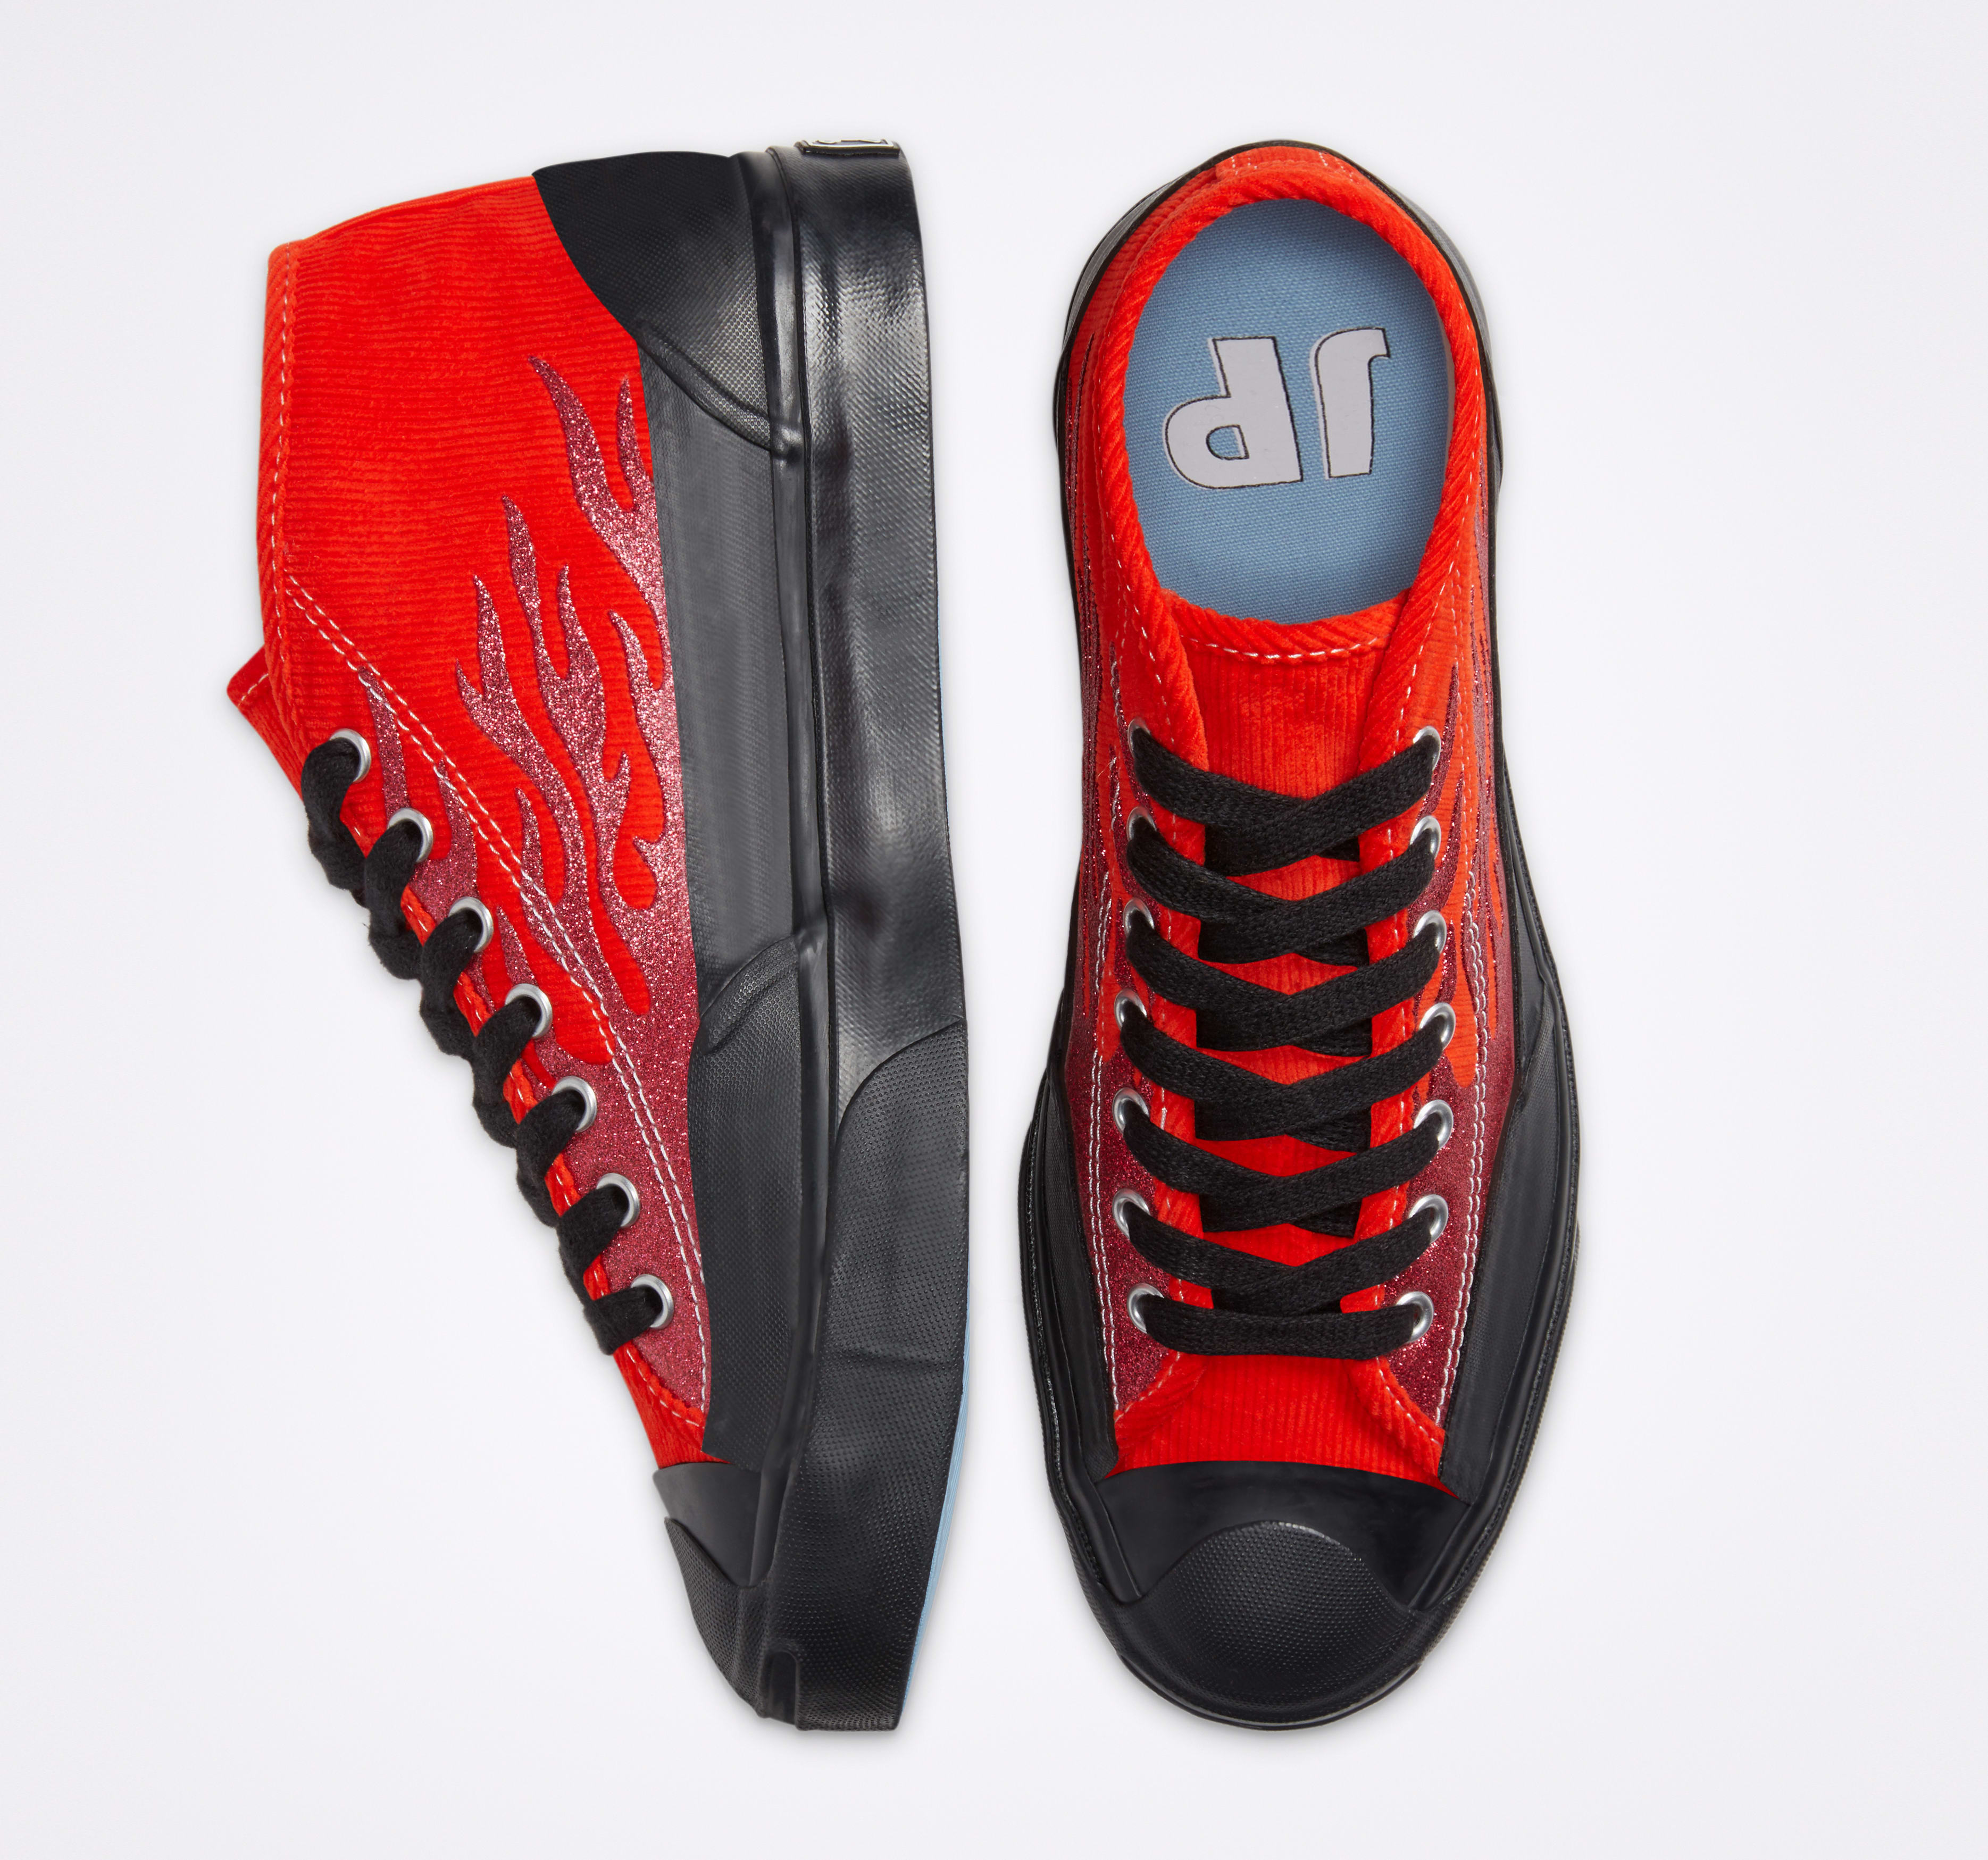 asap-nast-converse-jack-purcell-mid-red-167378c-pair